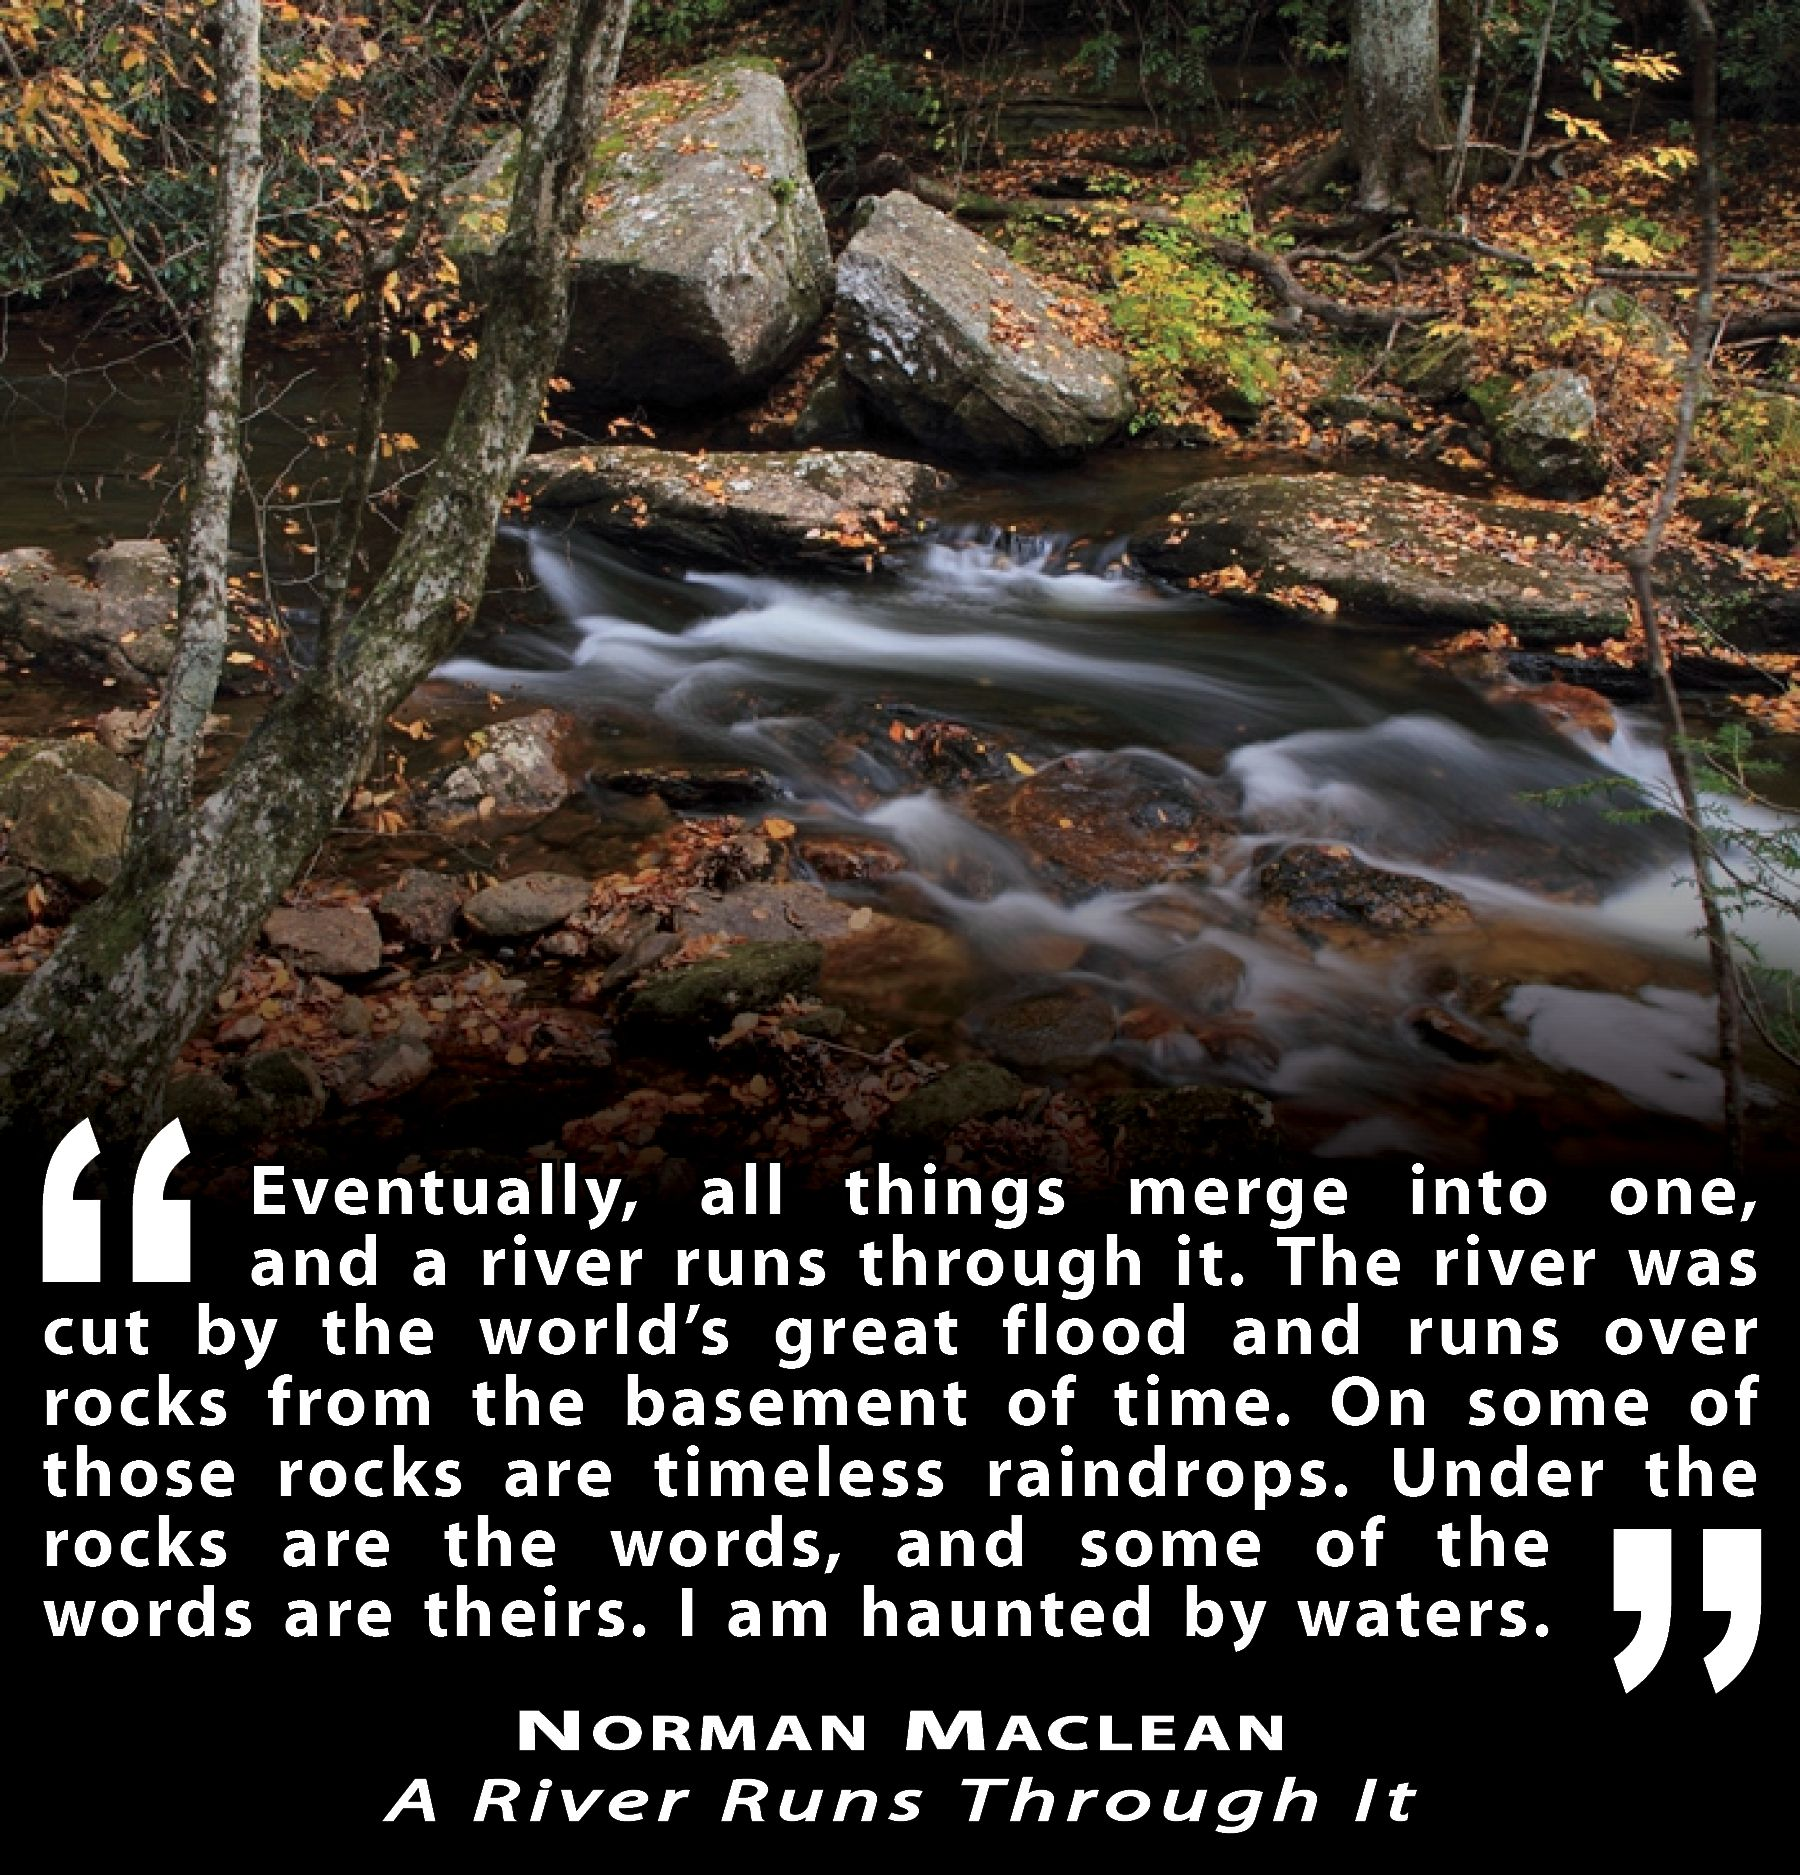 a river runs through it essay questions An excerpt from a river runs through it by norman maclean also available on website: online catalogs, secure online ordering, excerpts from new books sign up for email notification of new.